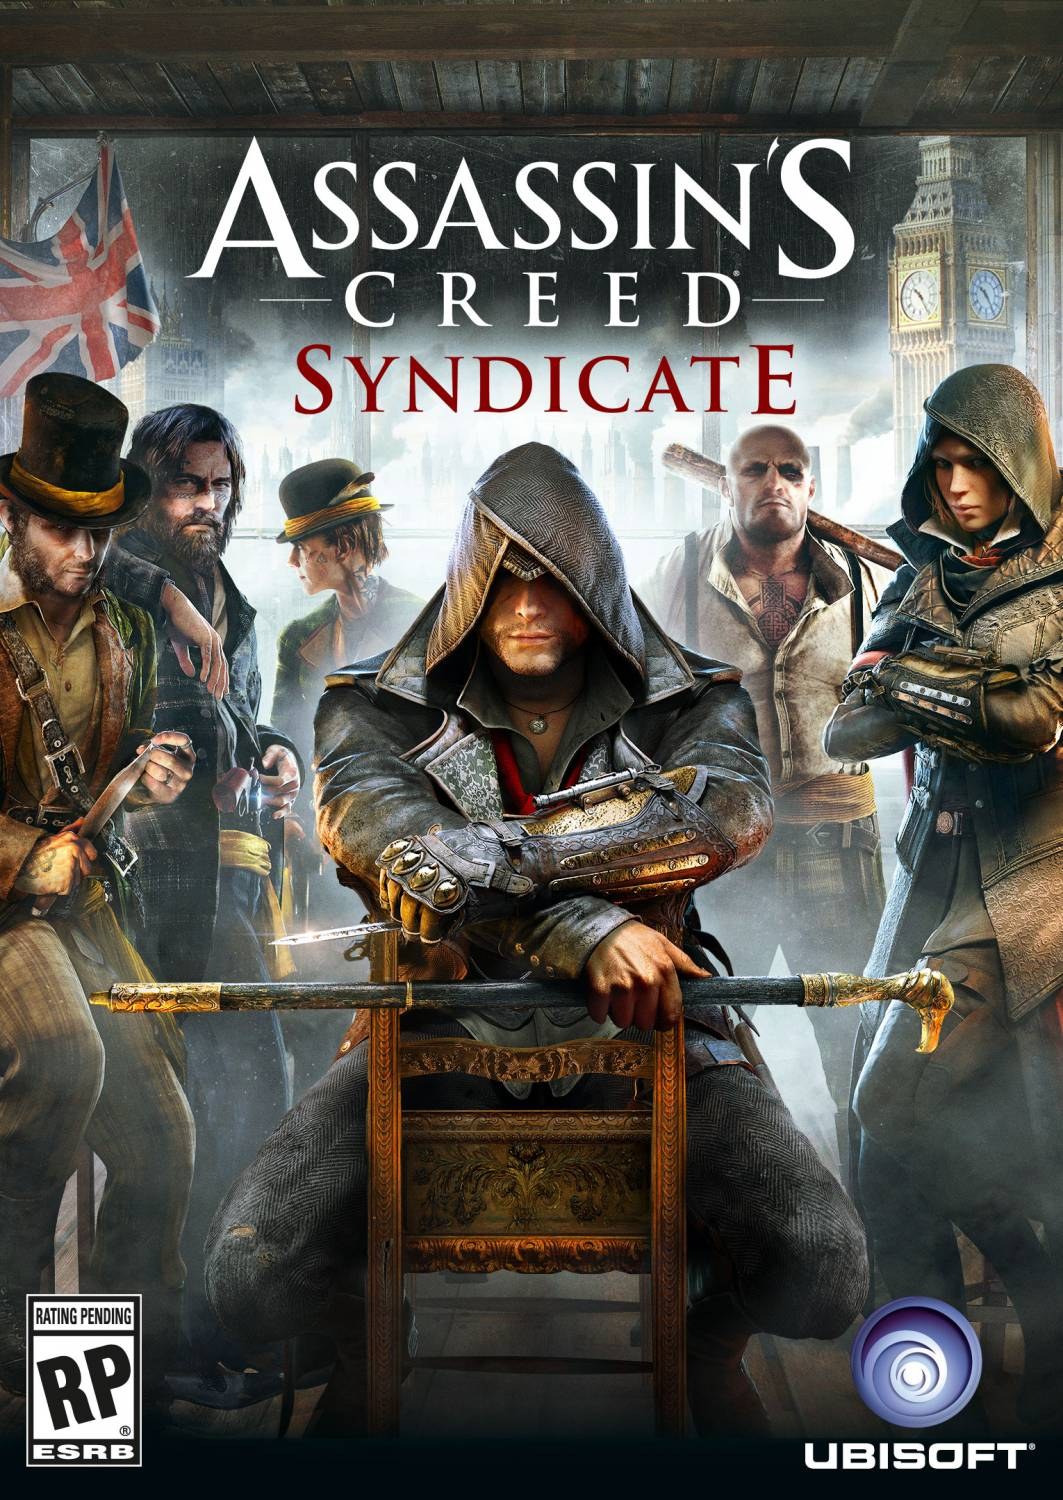 http://torrentsgame.ru/load/games/action/assassins_creed_syndicate/2-1-0-18